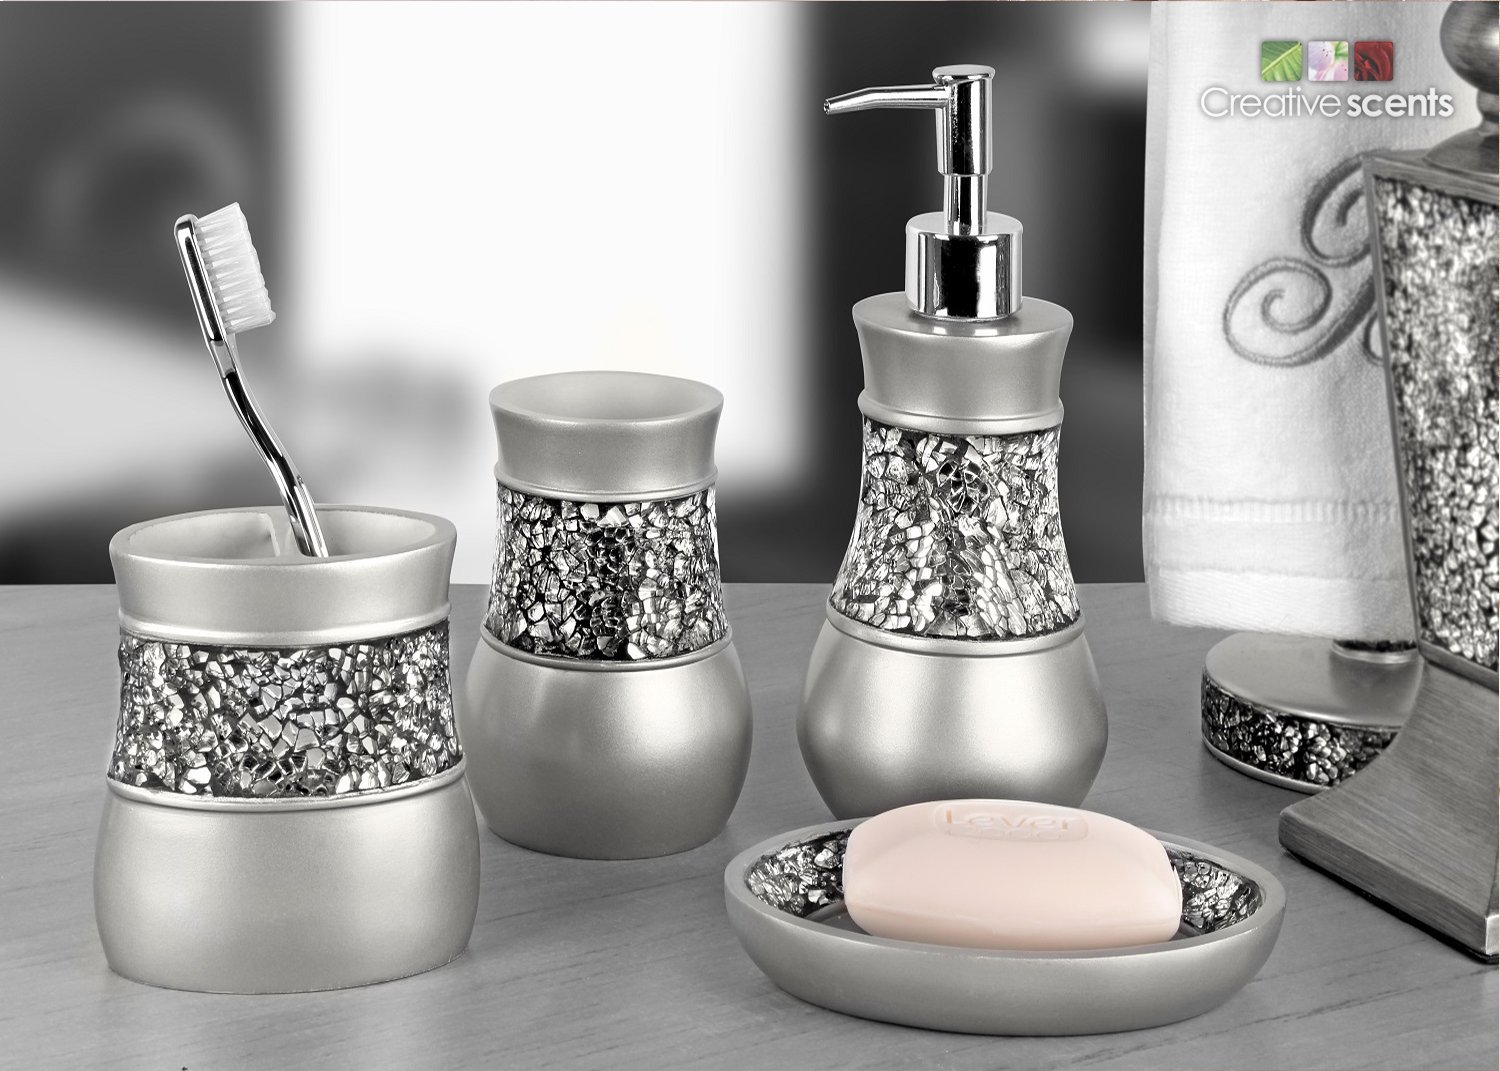 amazoncom creative scents bathroom accessories set 4 piece bath ensemble bath set collection features soap dispenser pump toothbrush holder tumbler - Bathroom Sets